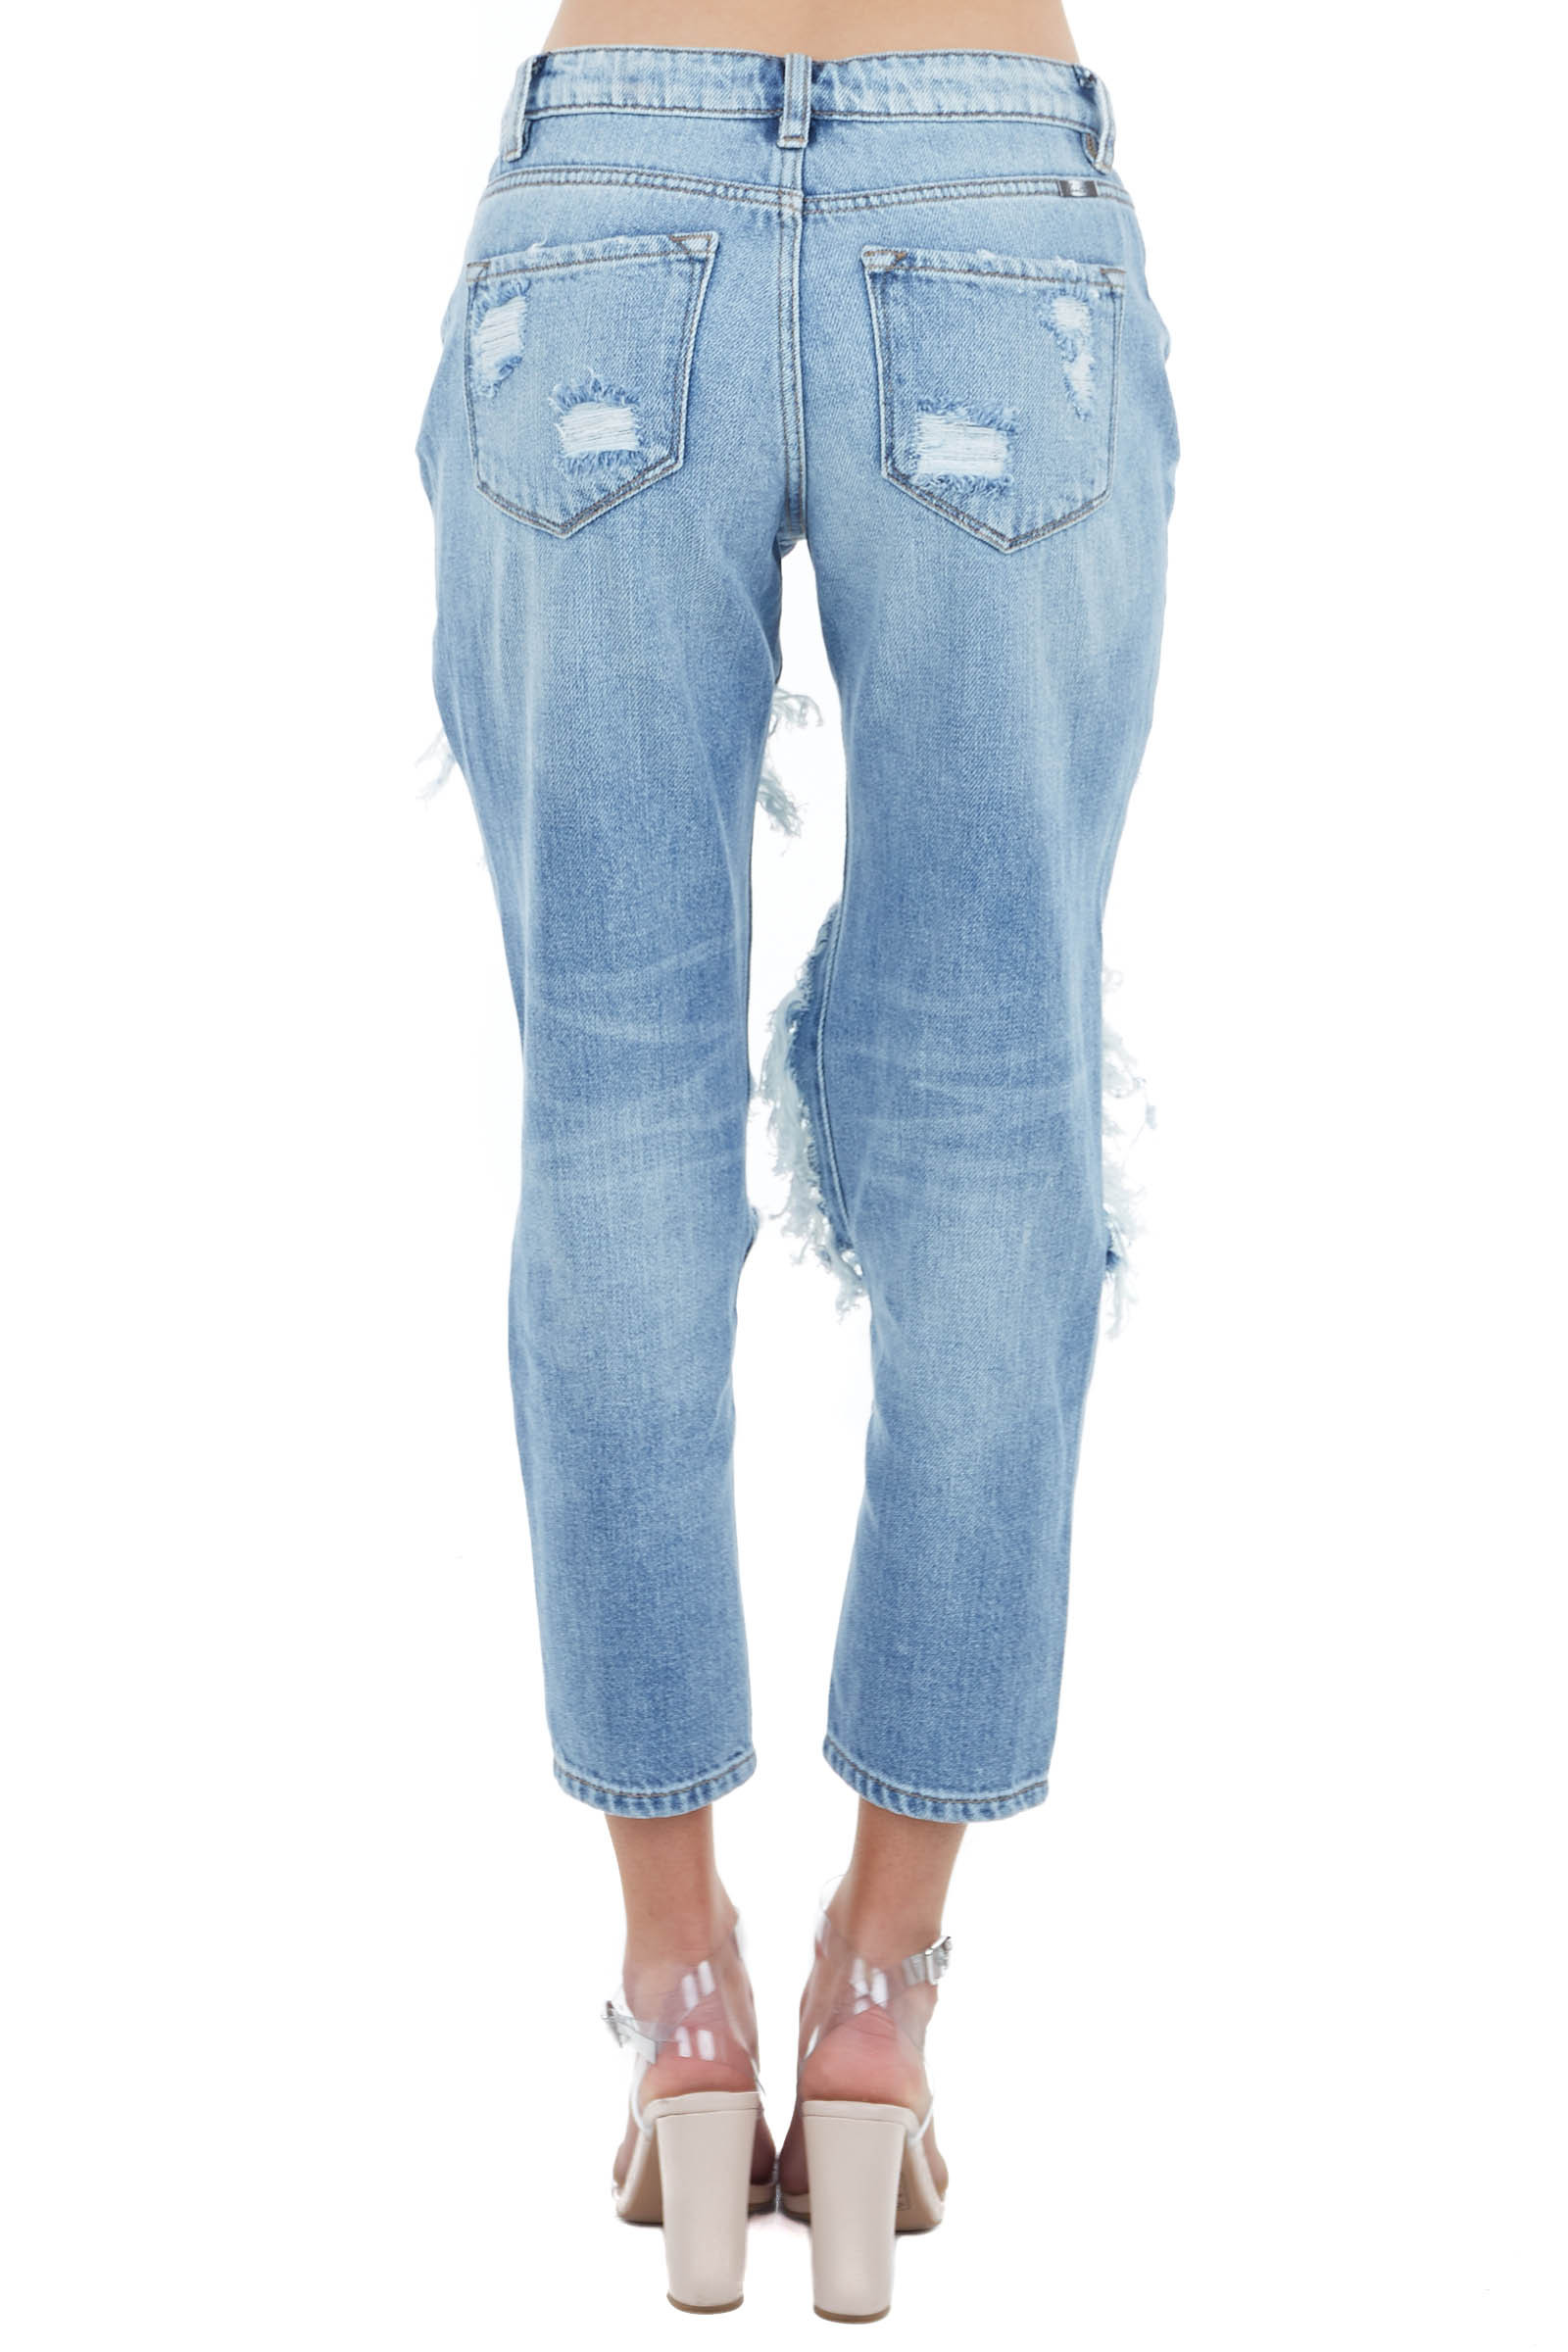 Vintage Medium Wash Distressed Boyfriend Mid Rise Jeans